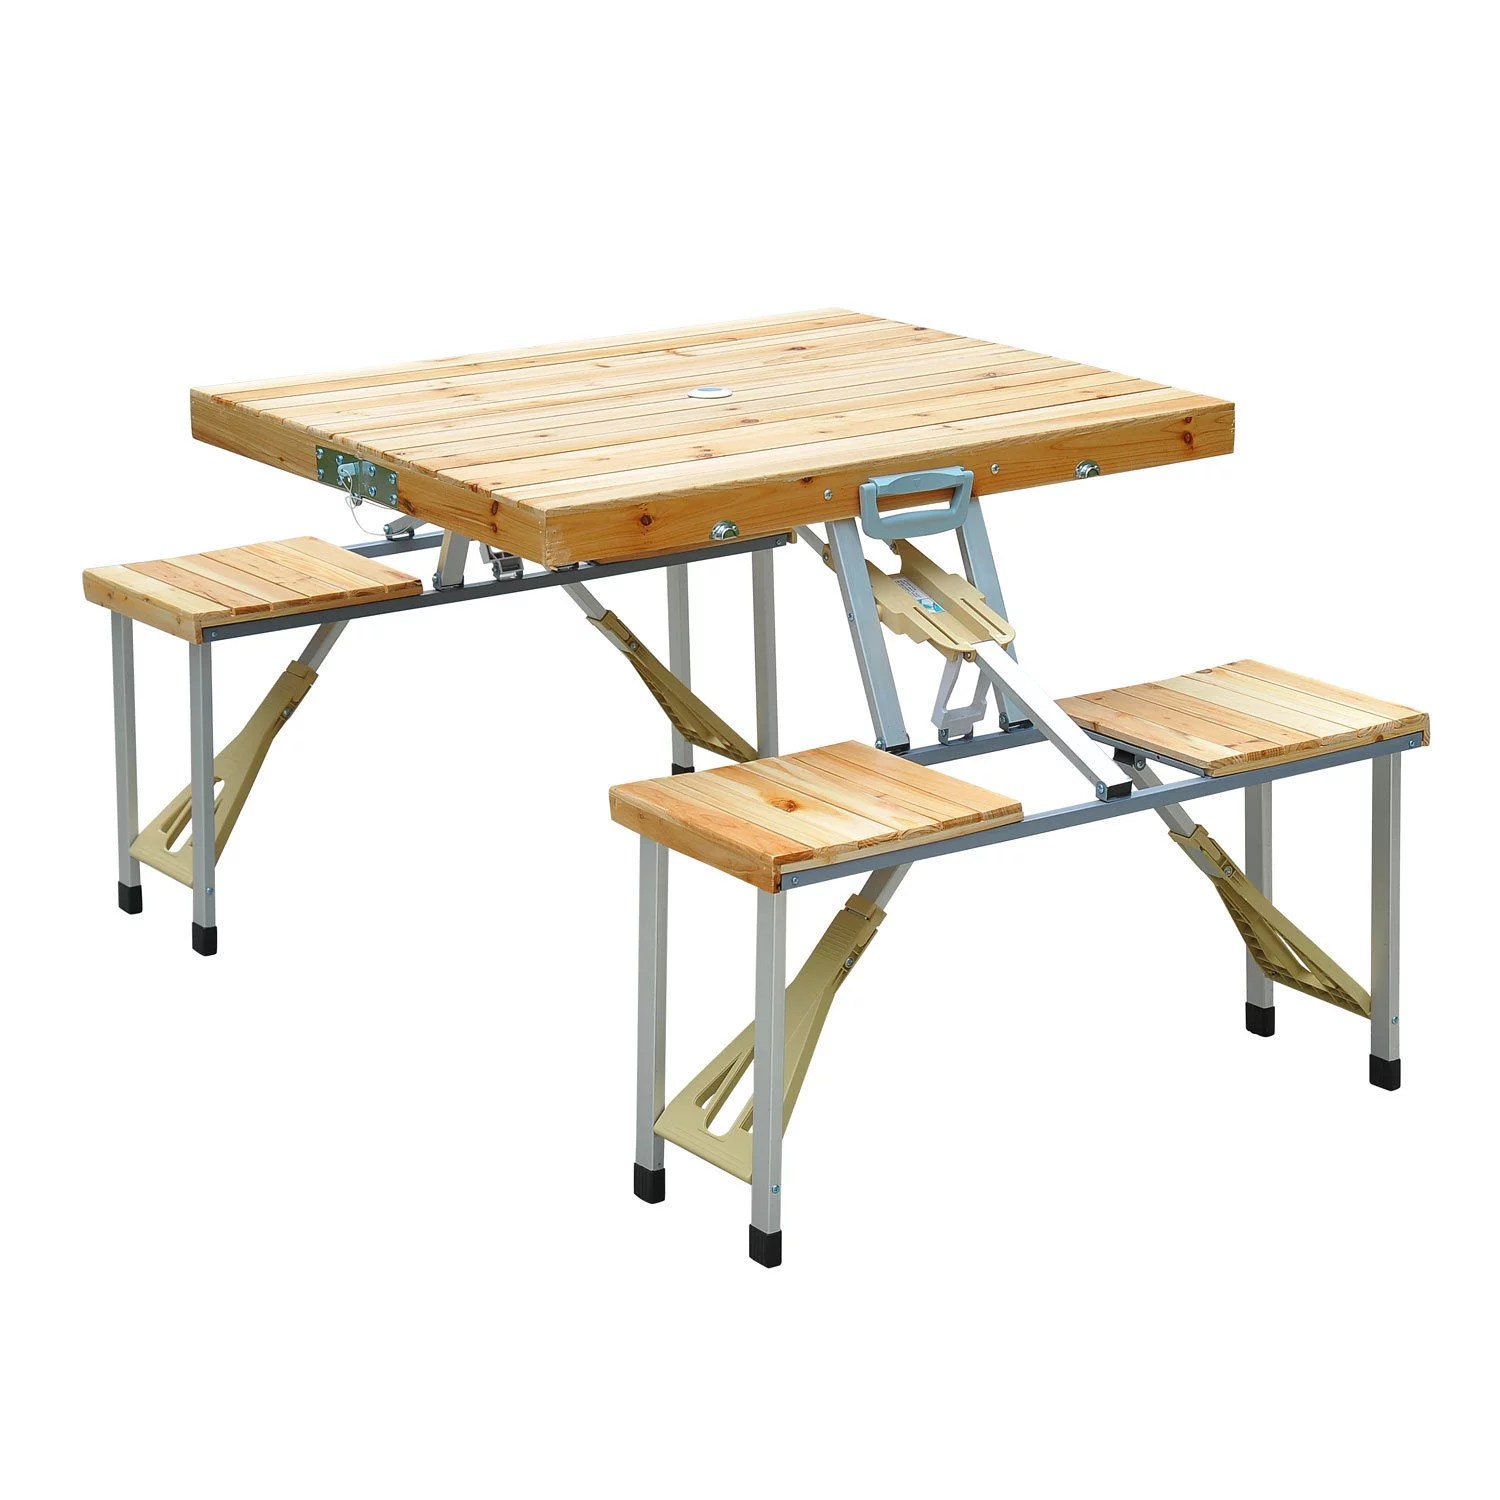 outsunny portable foldable camping picnic table with seats chairs and umbrella hole 4 person fold up travel picnic table wood